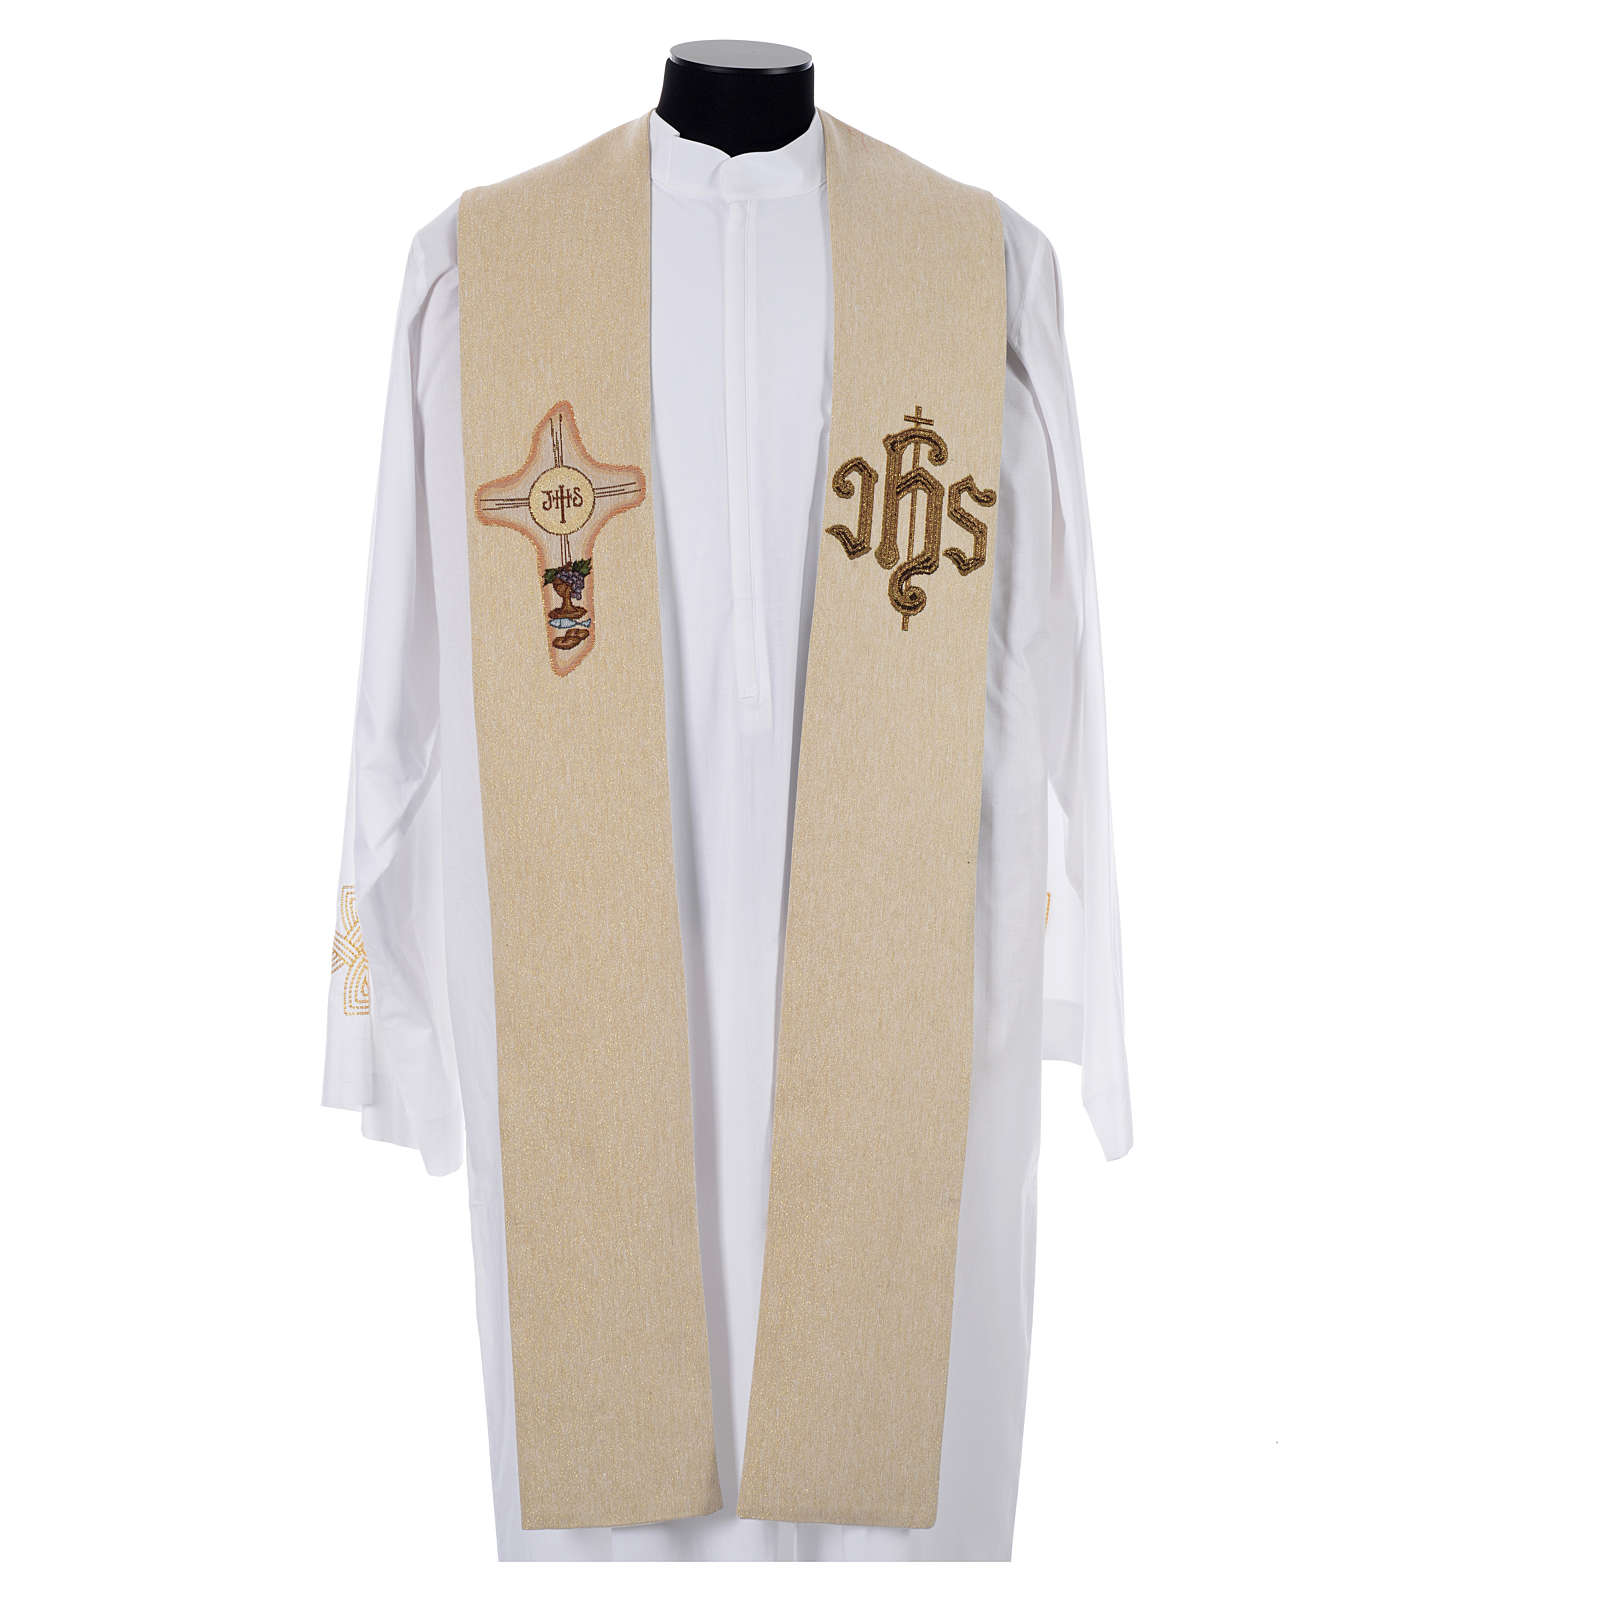 Minister Stole with cross and IHS in polyester, cotton and lurex 4